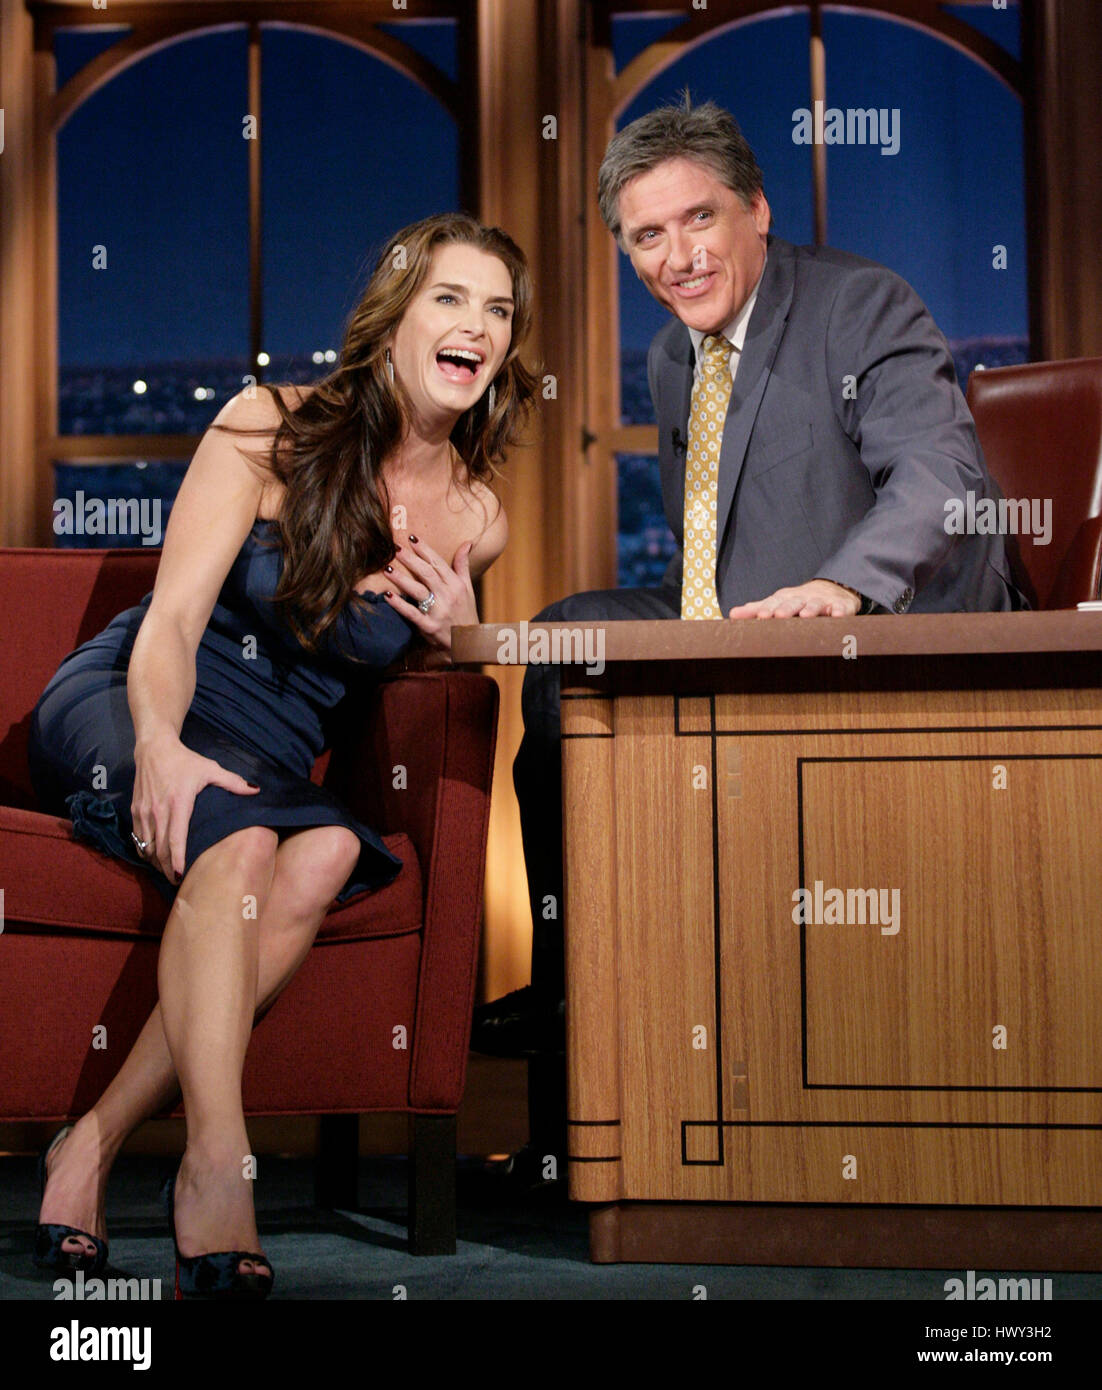 Actress Brooke Shields, Left, Chats With Host Craig Ferguson During A  Segment Of U0027The Late Late Show With Craig Fergusonu0027 At CBS Television City  In Los ...